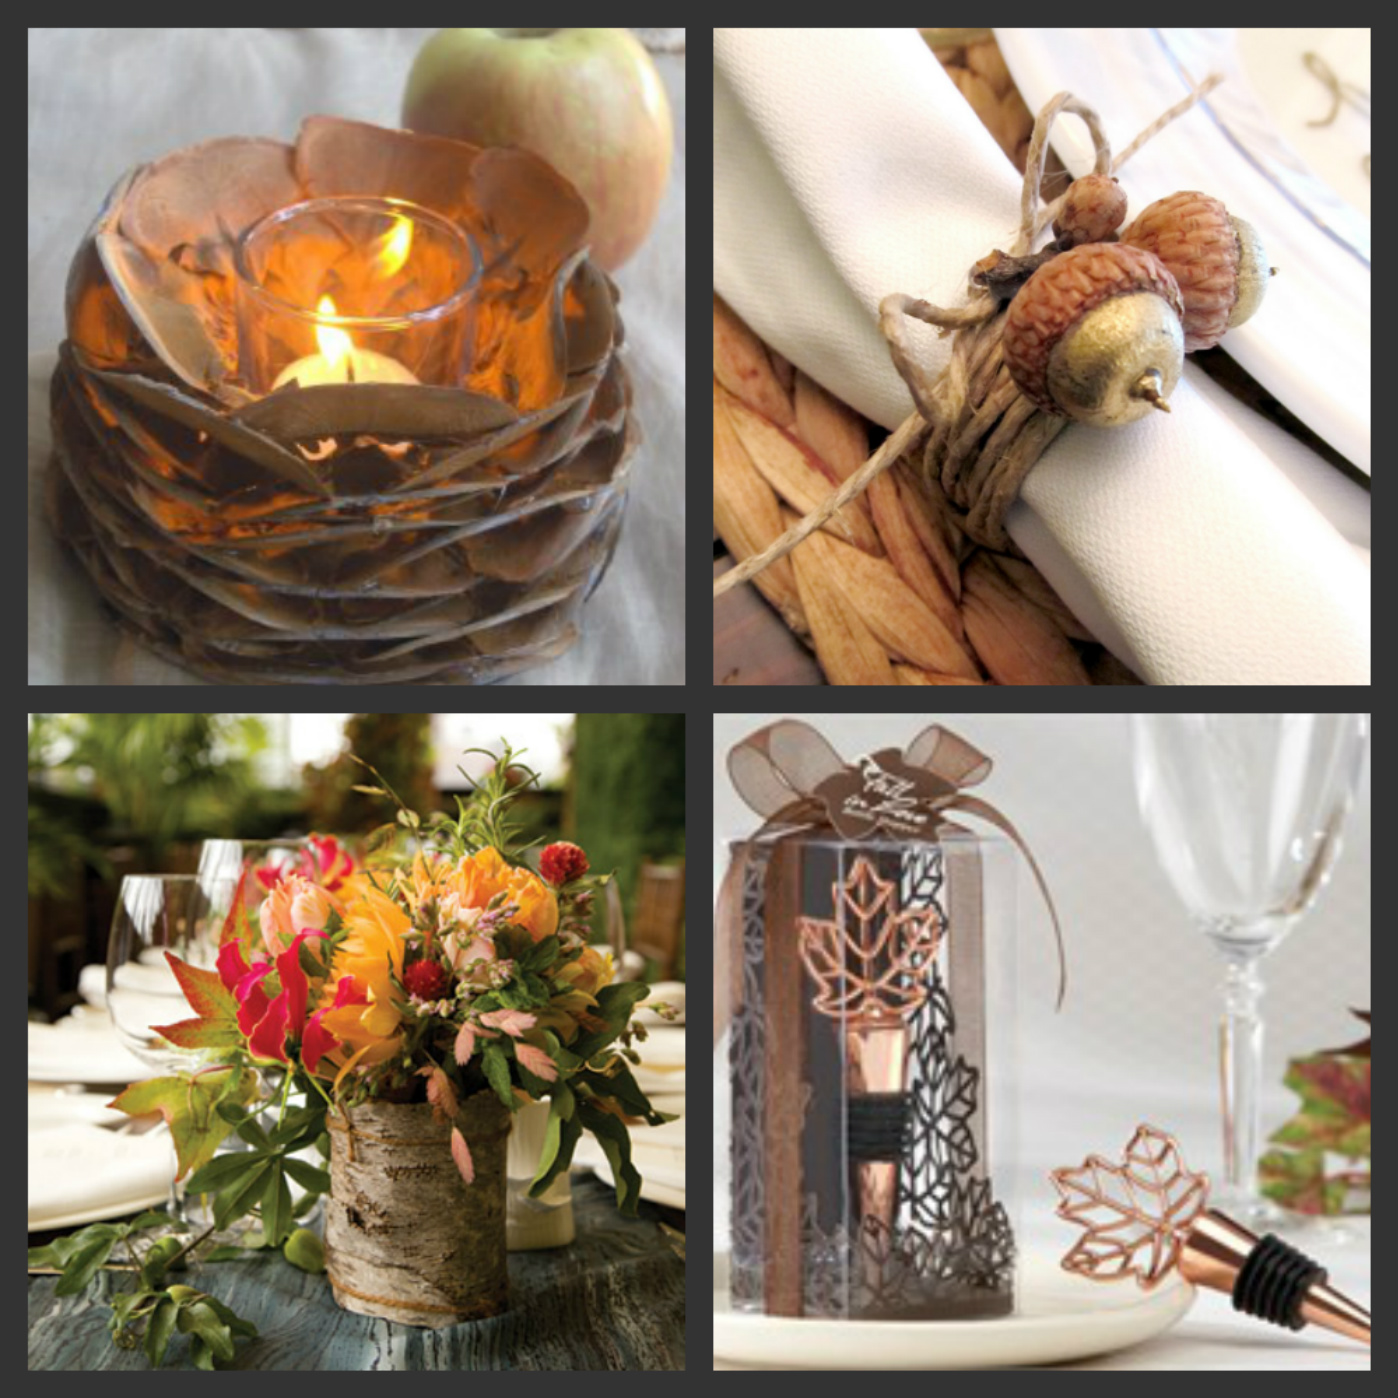 Weddings Are Fun Blog Diy Autumn Wedding Tables Decorations Using